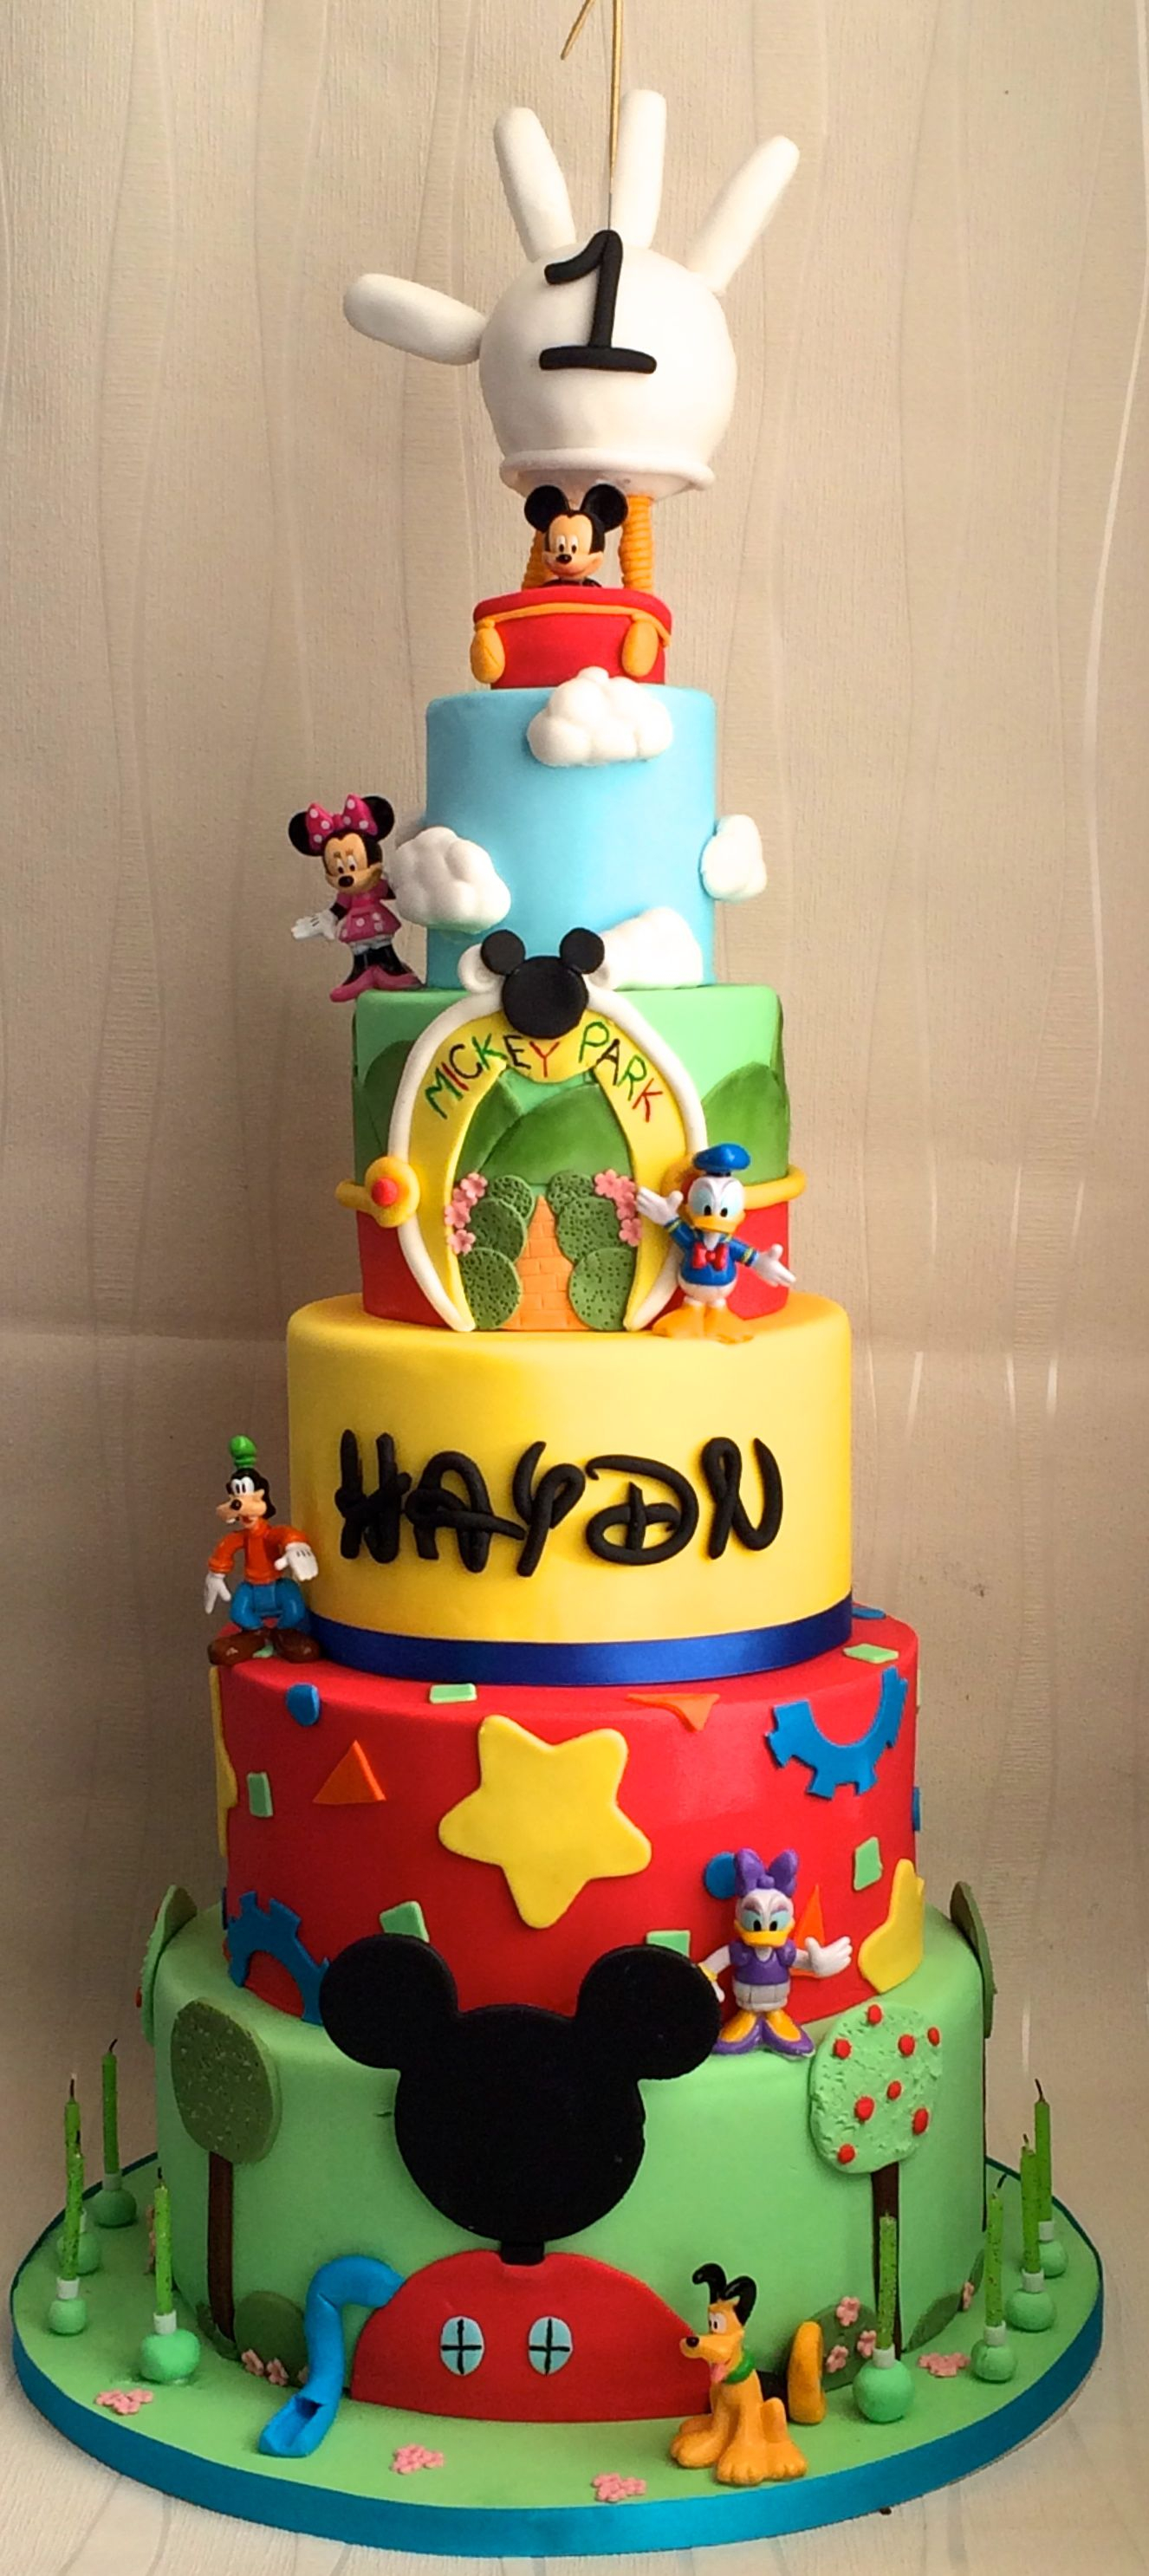 Mickey Mouse Clubhouse Birthday Cake 1st Birthday Mickey Mouse Clubhouse Cake Mickey And Minnie Cakes